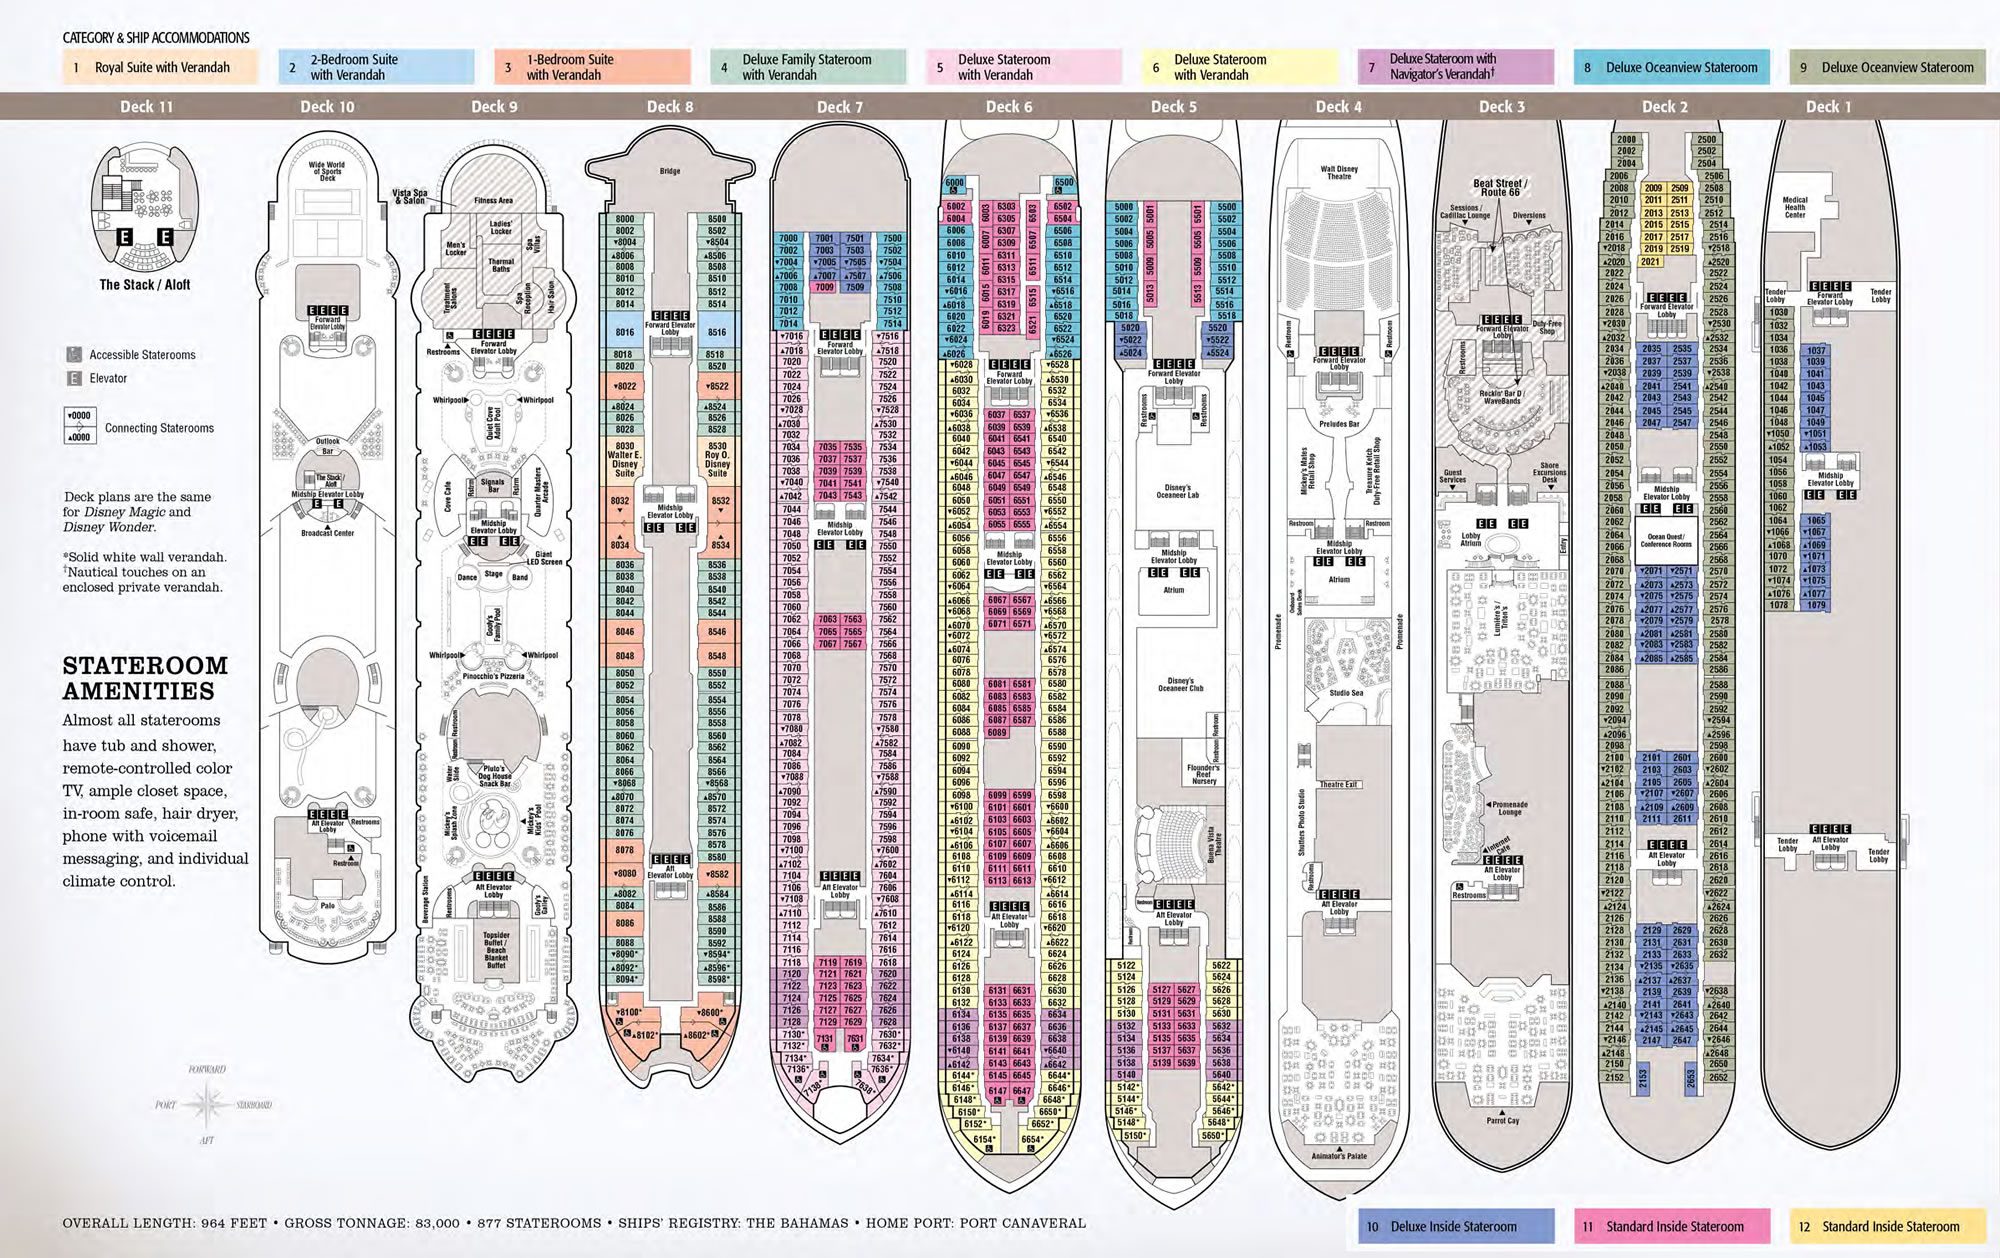 Disney Wonder Amp Disney Magic 2010 Deck Plans Off To